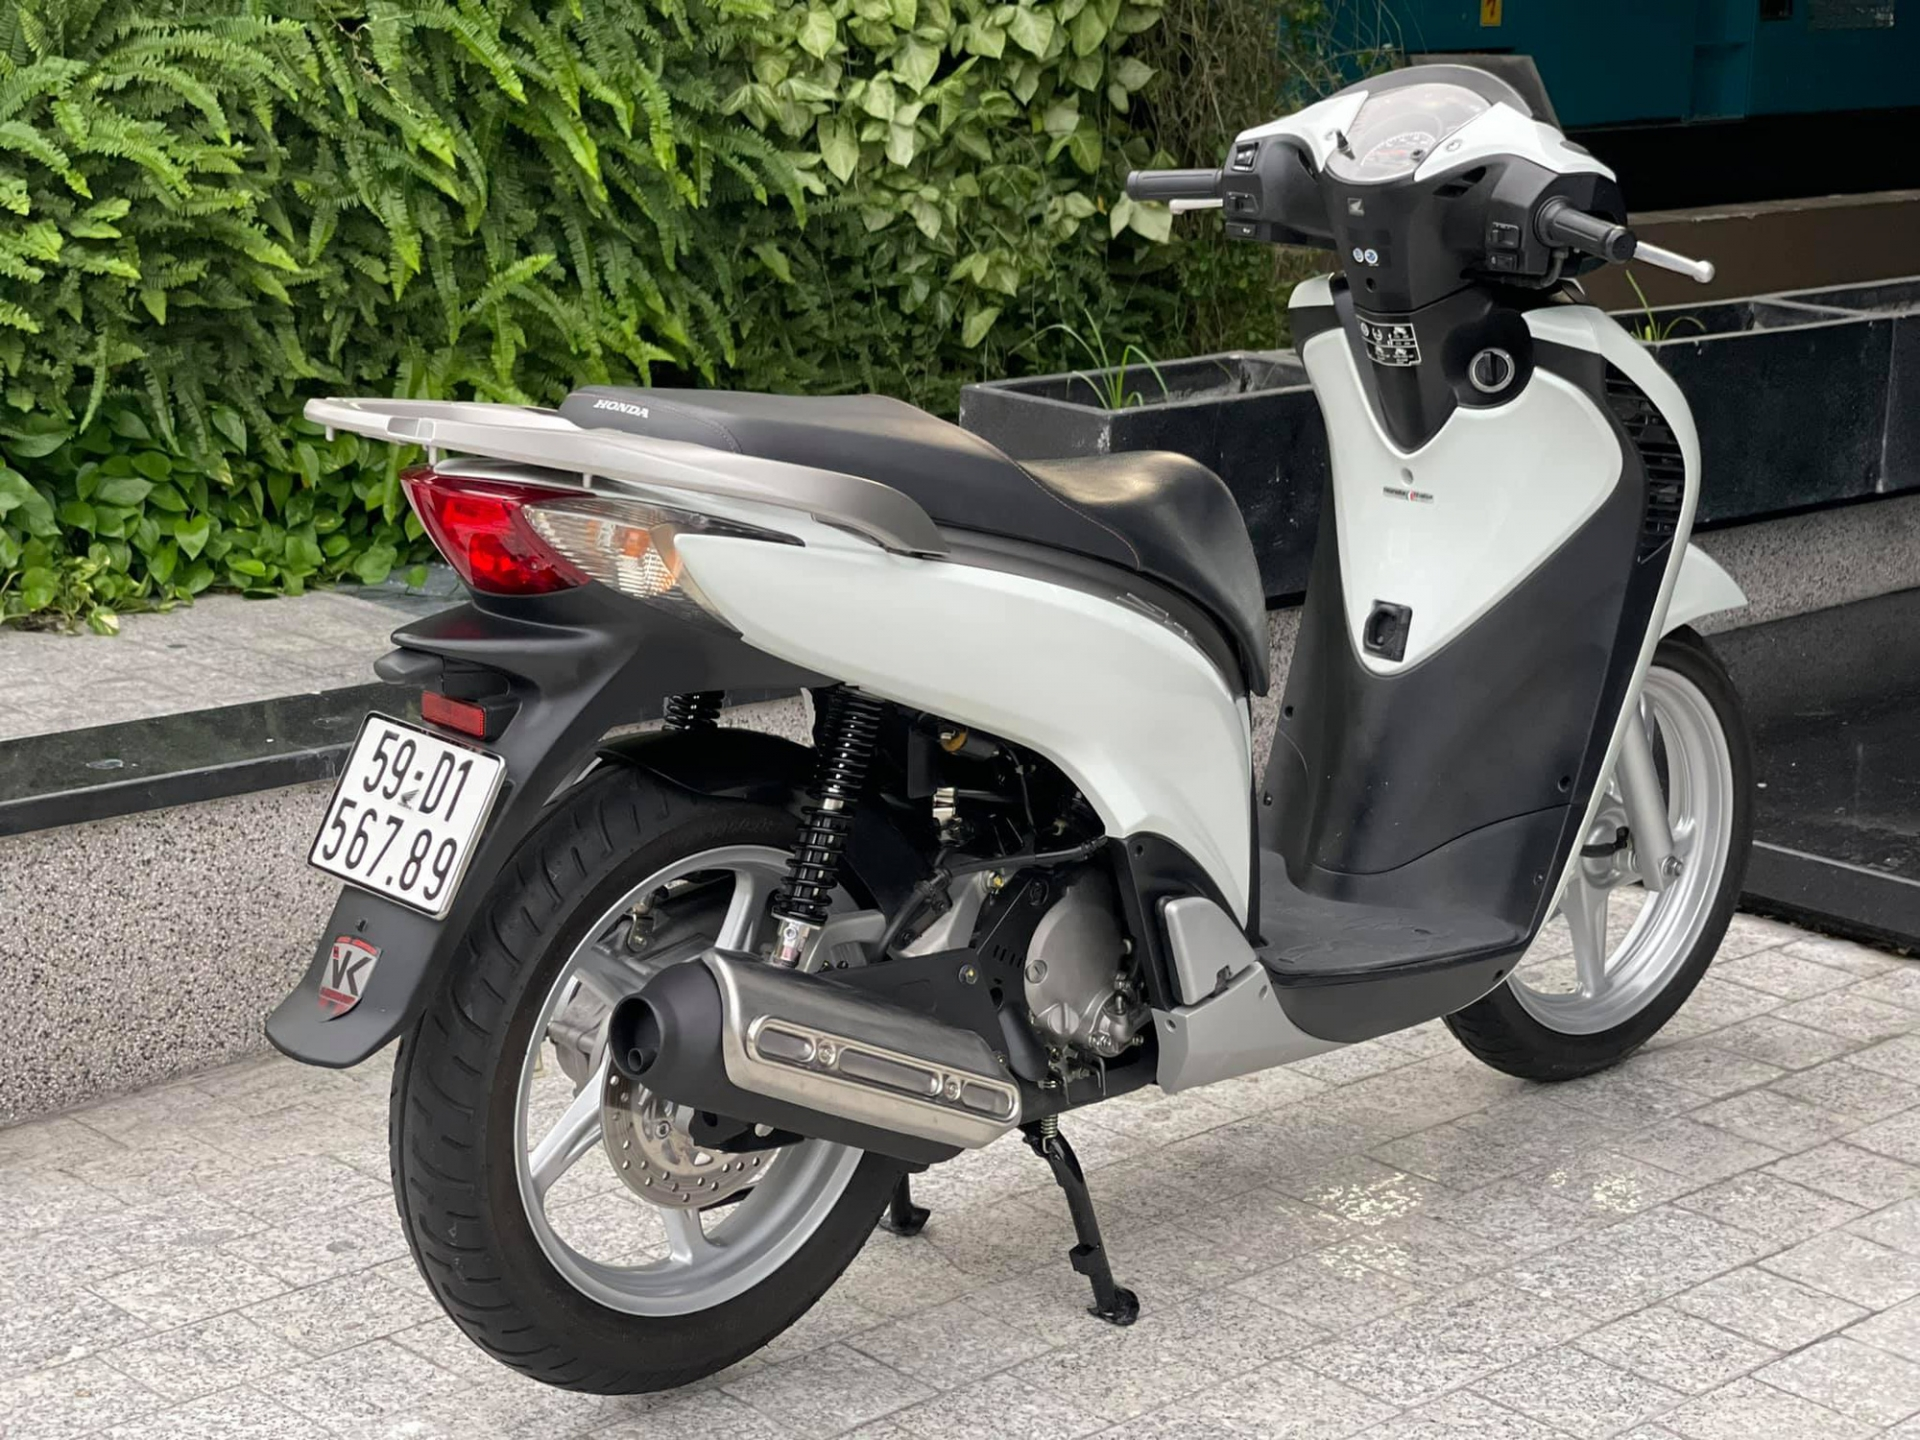 Old Honda SH 150i for sale for 1 billion dong, the car found a new owner after only 4 days 6